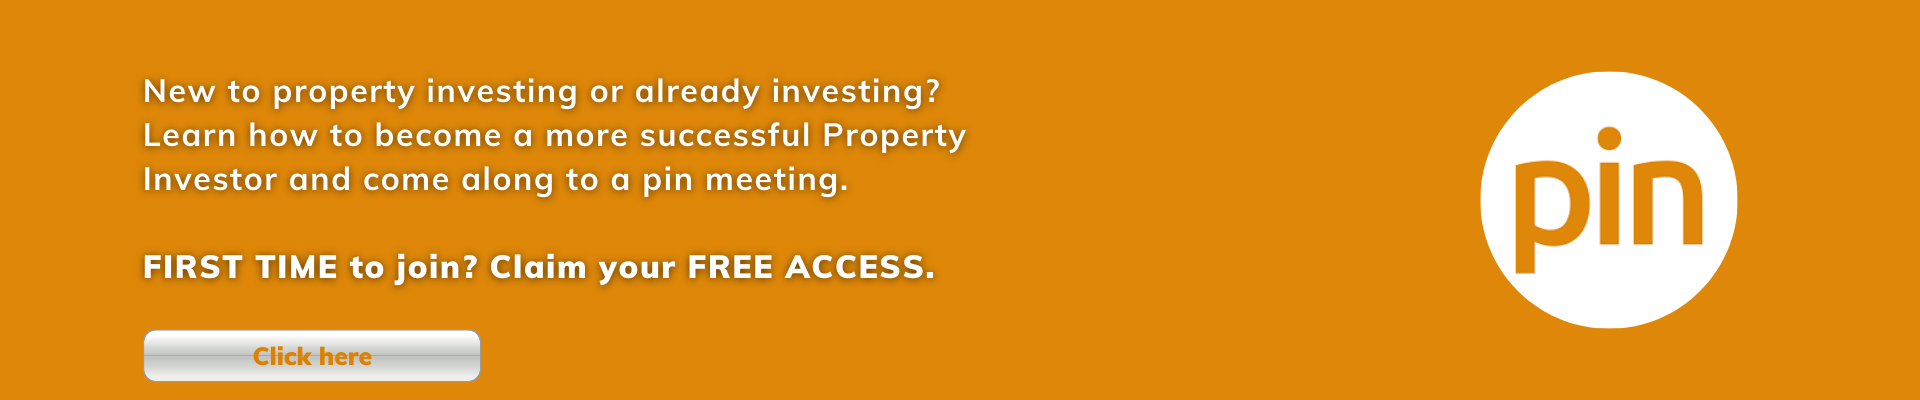 Property Investing or already investing Learn how to become a more successful Property Investor and come along to a pin meeting. FIRST TIME to join Claim your FREE ACCESS. (5)